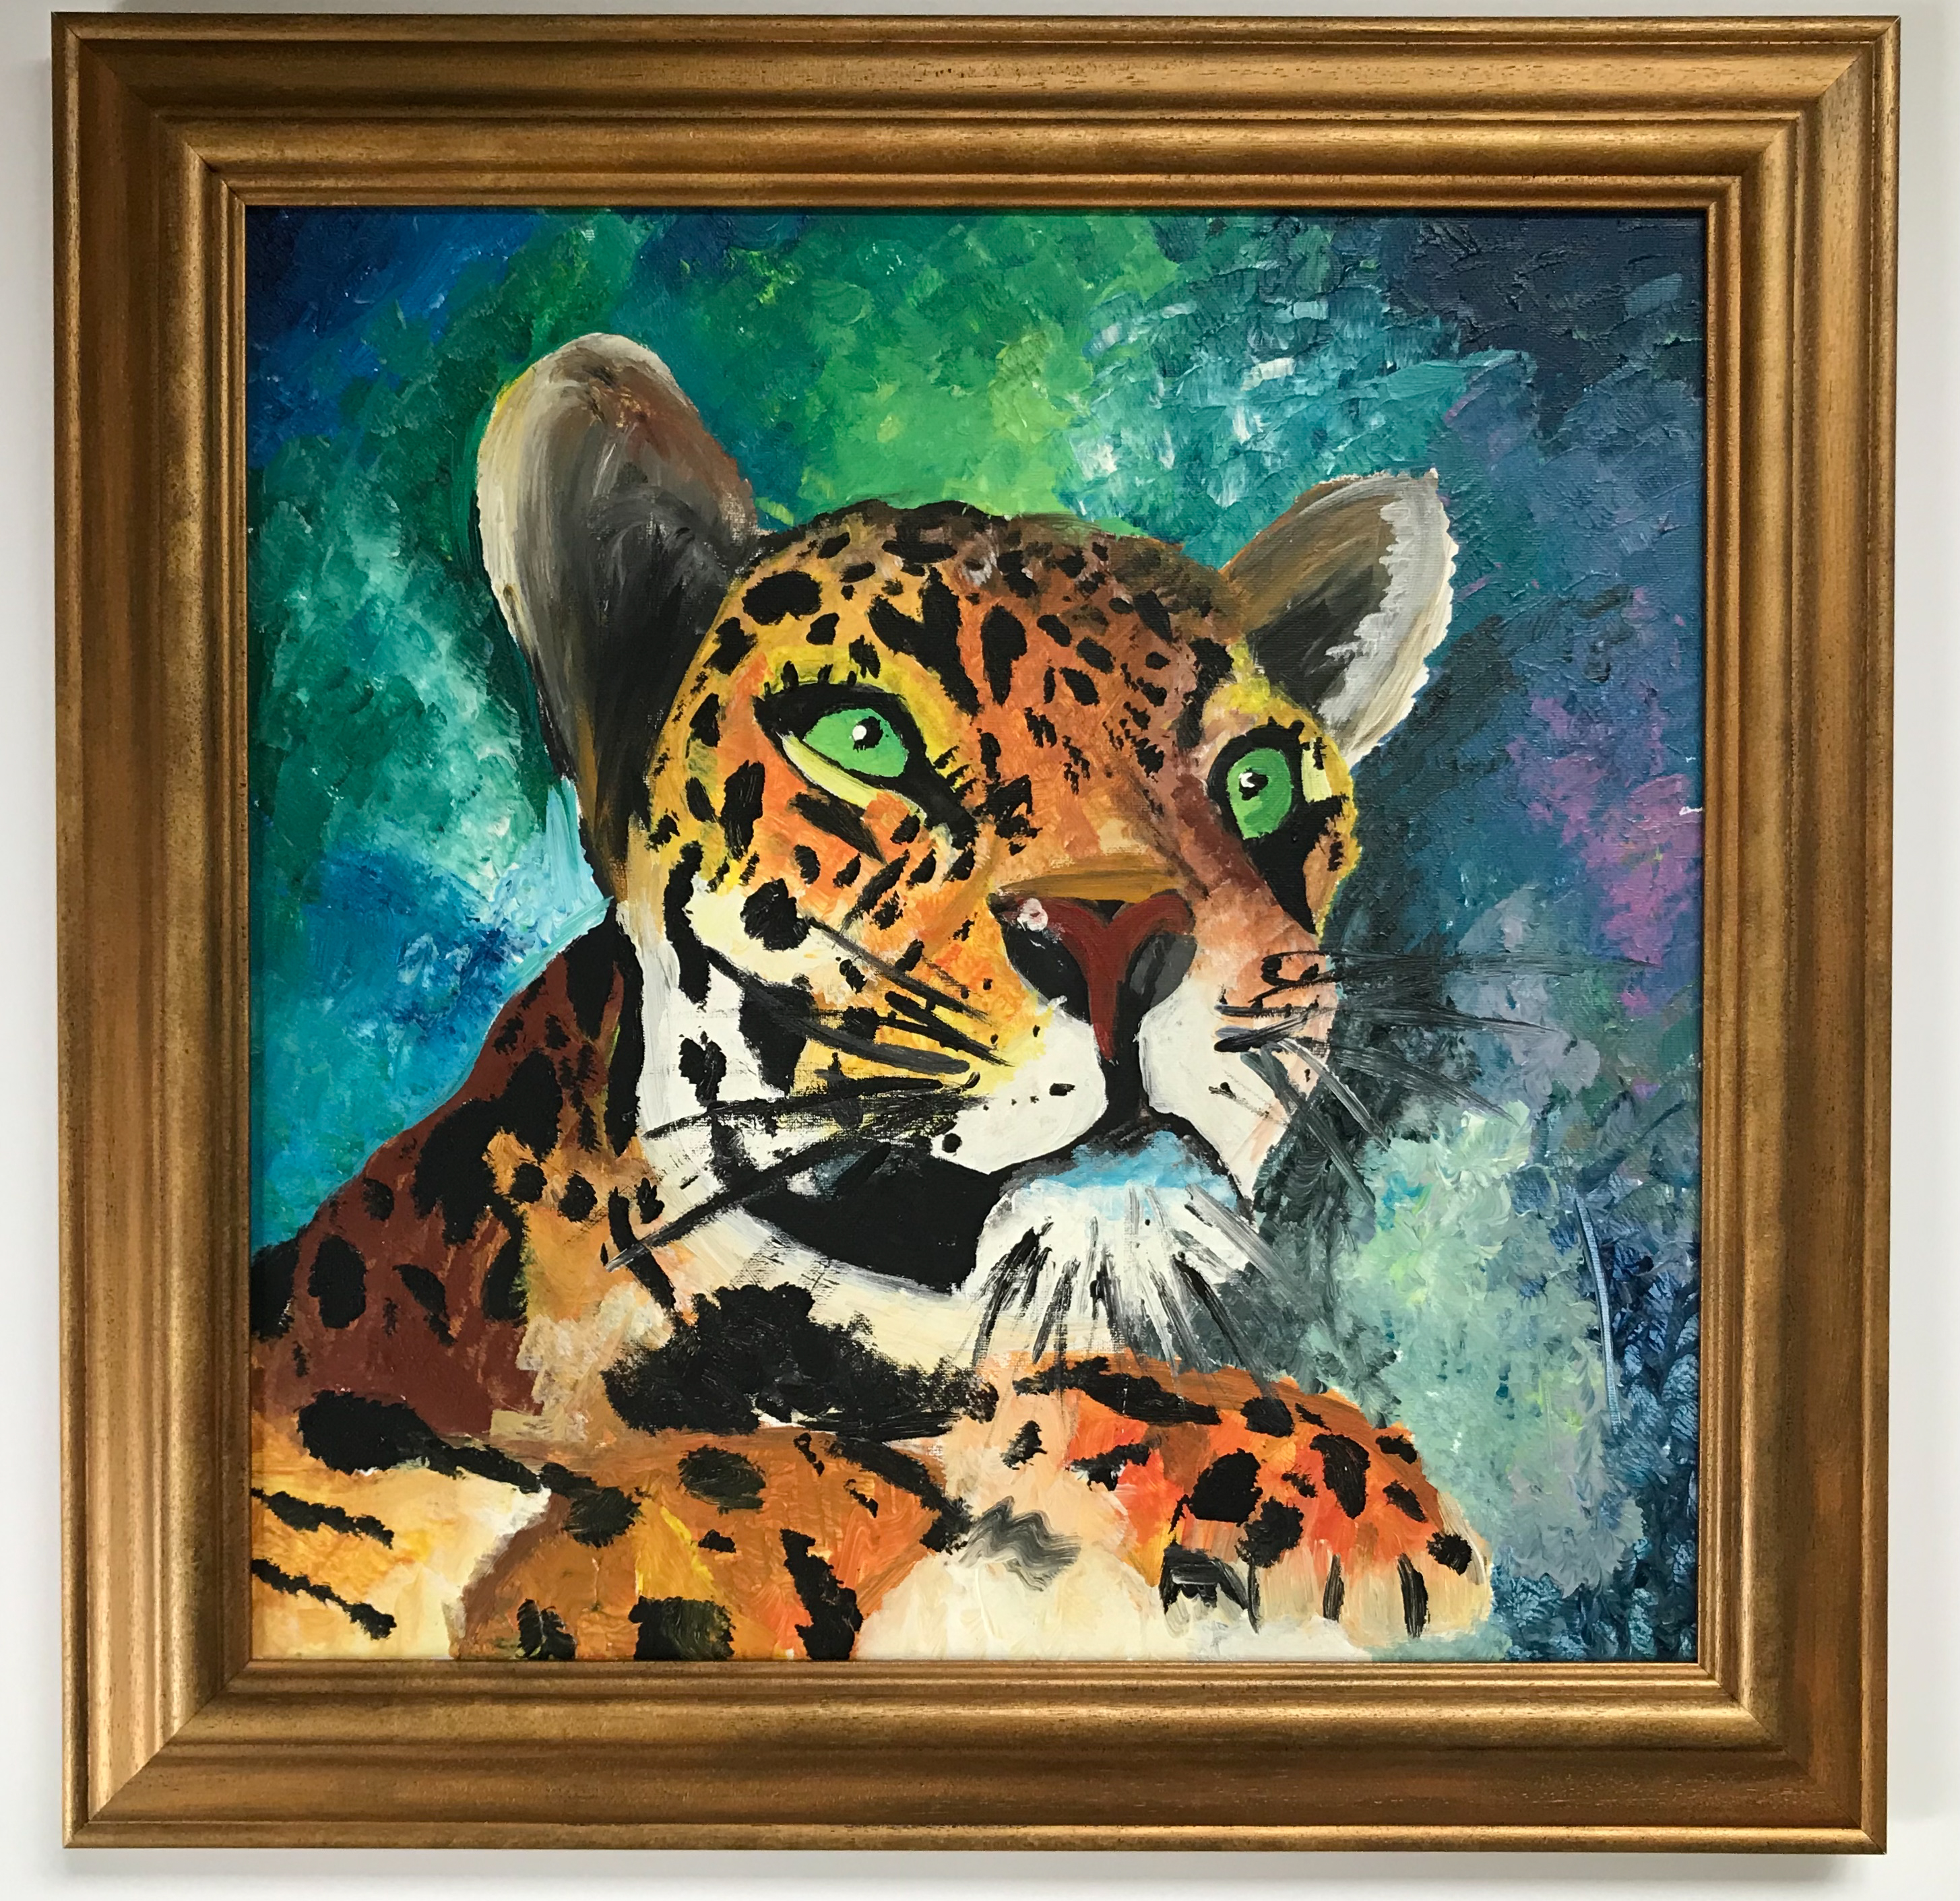 Leopard with hand painted gold frame | Framed by Jules Sainter of Lovingly Framed